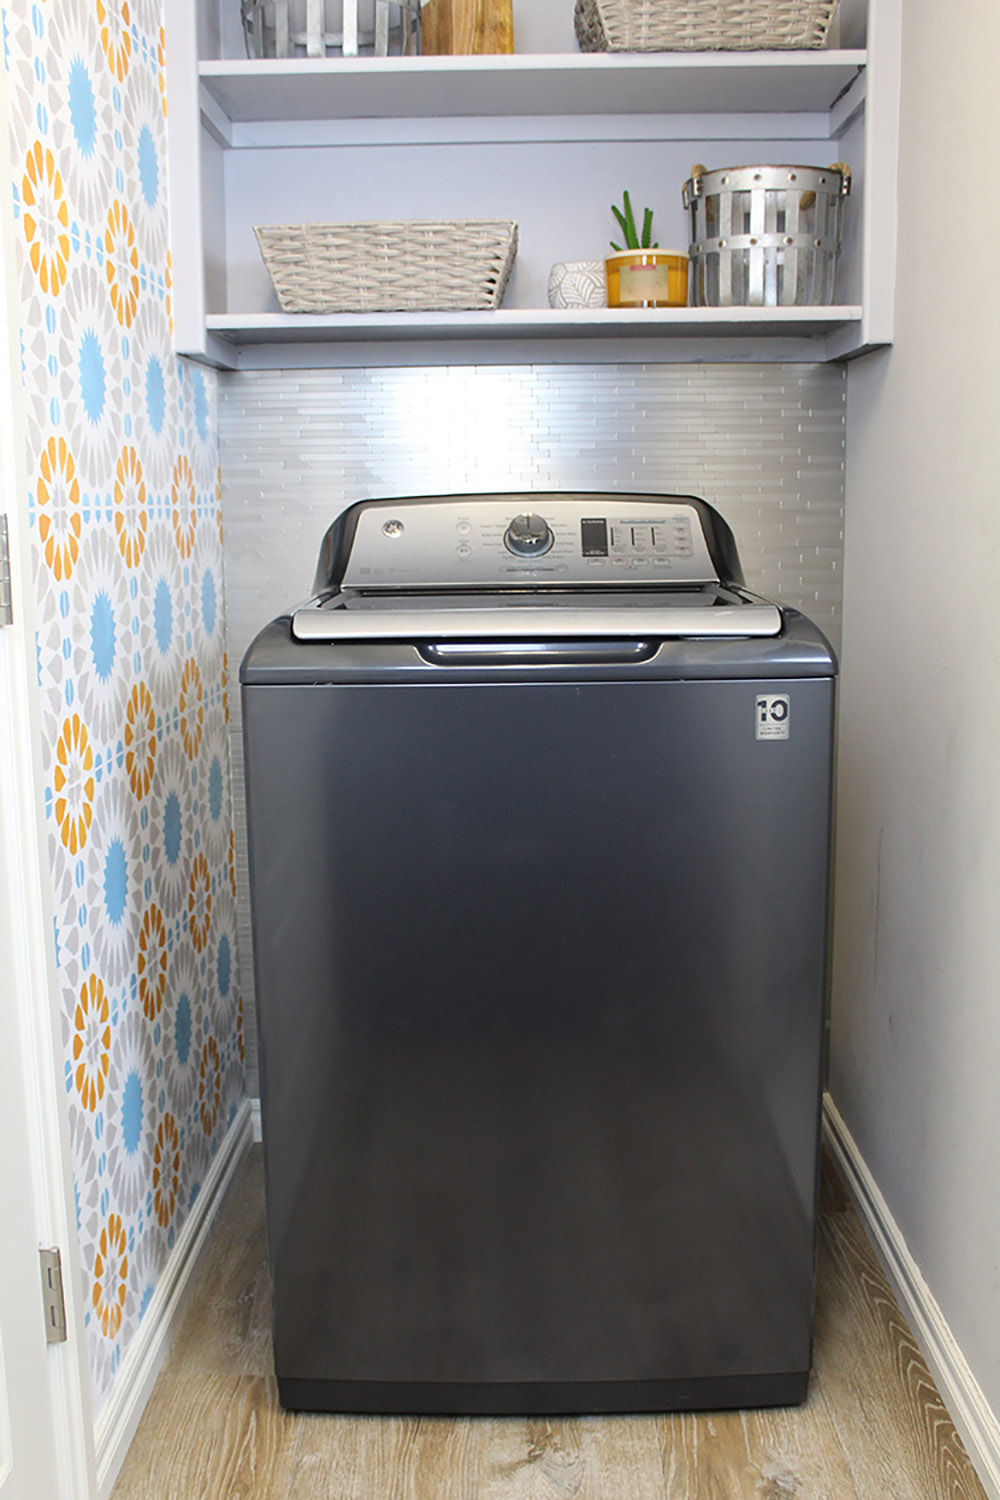 A gray GE washing machine in front of a wall of metal backsplash.